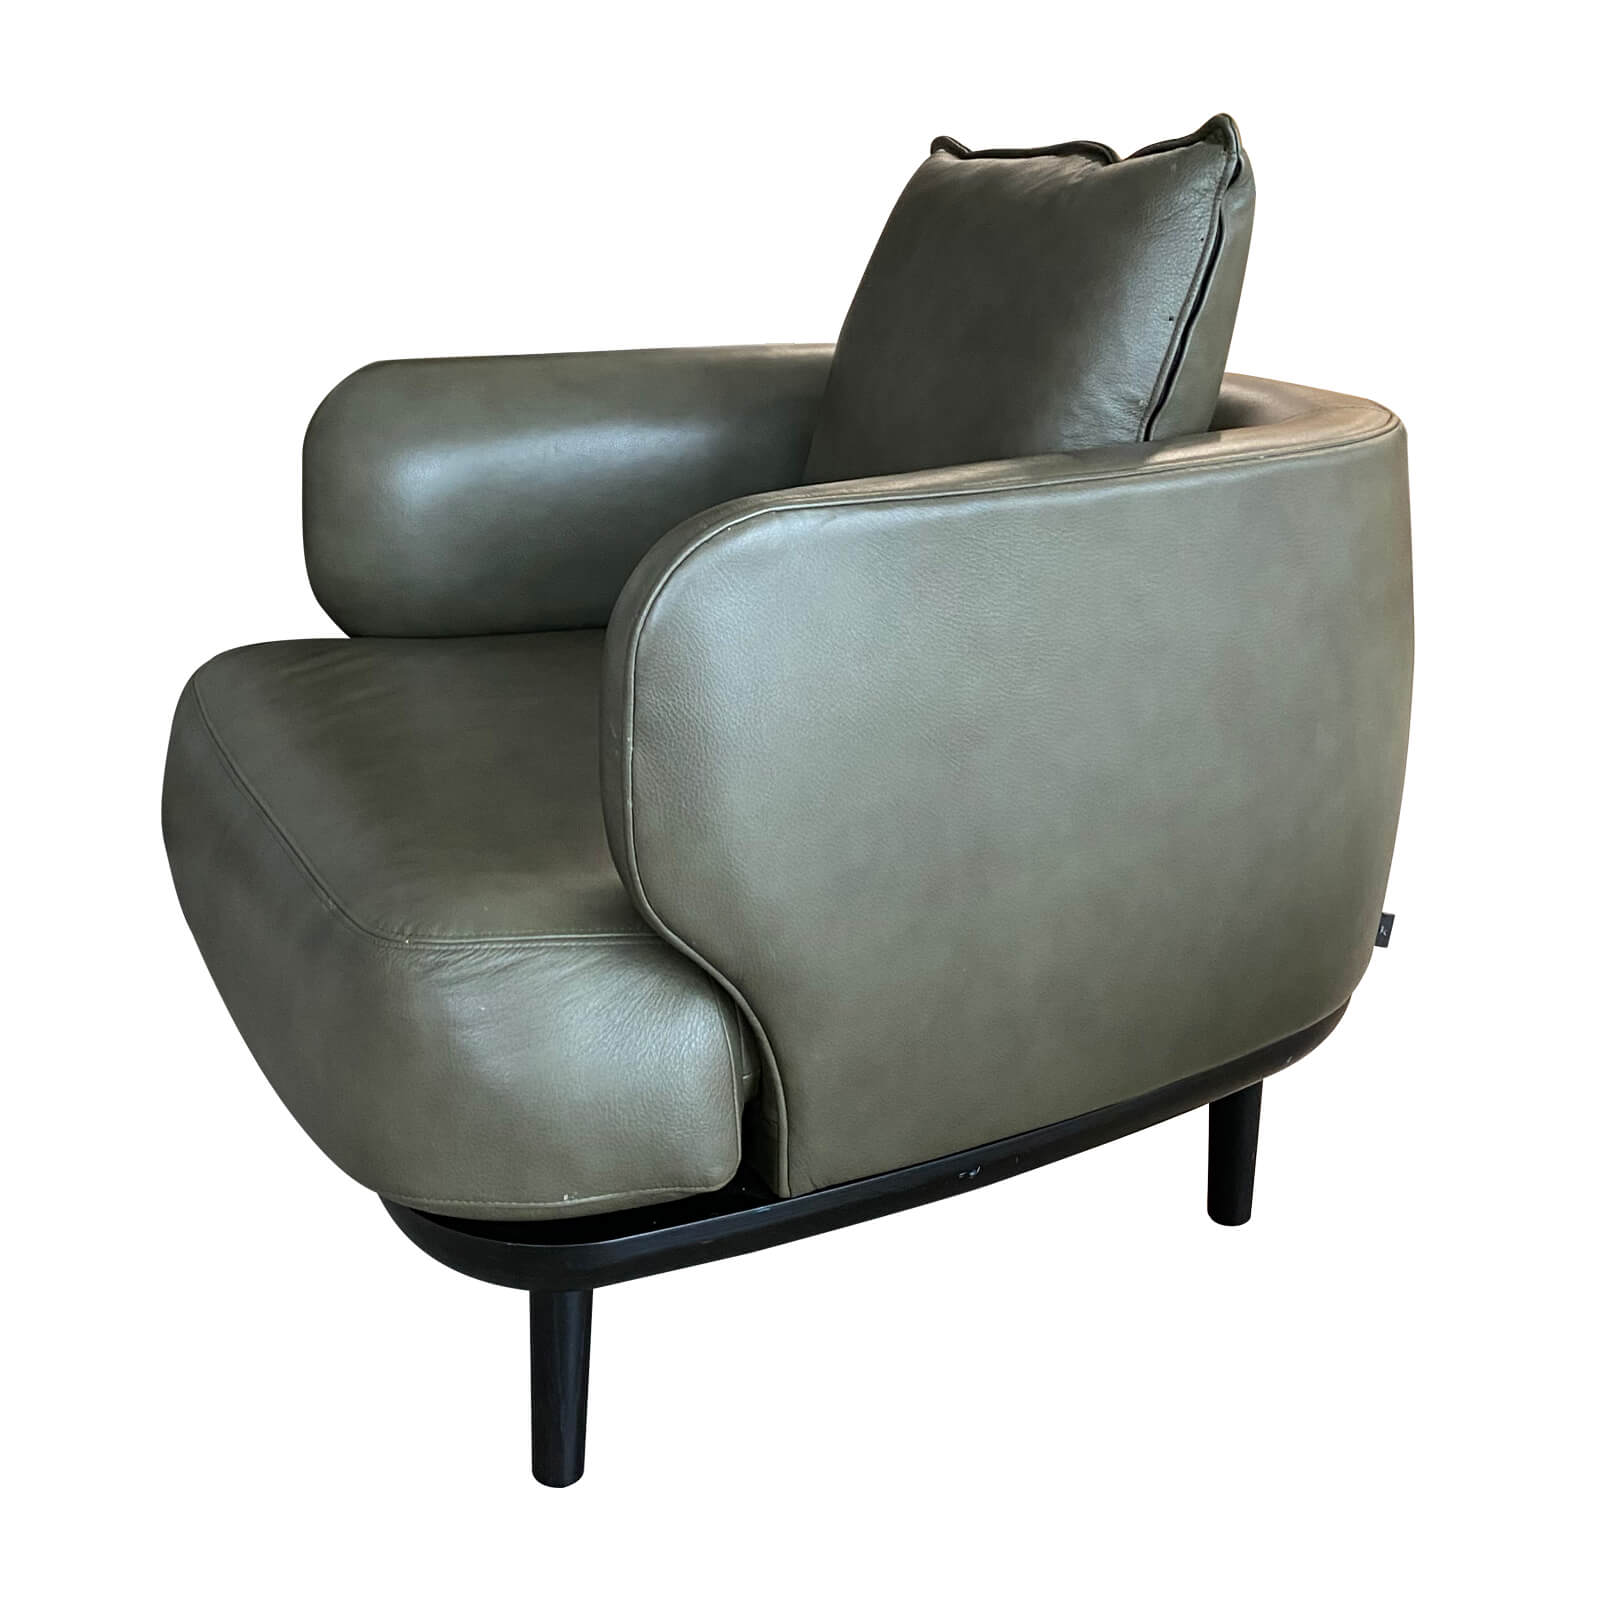 Two Design Lovers Cosh Living - Johanna occasional chair